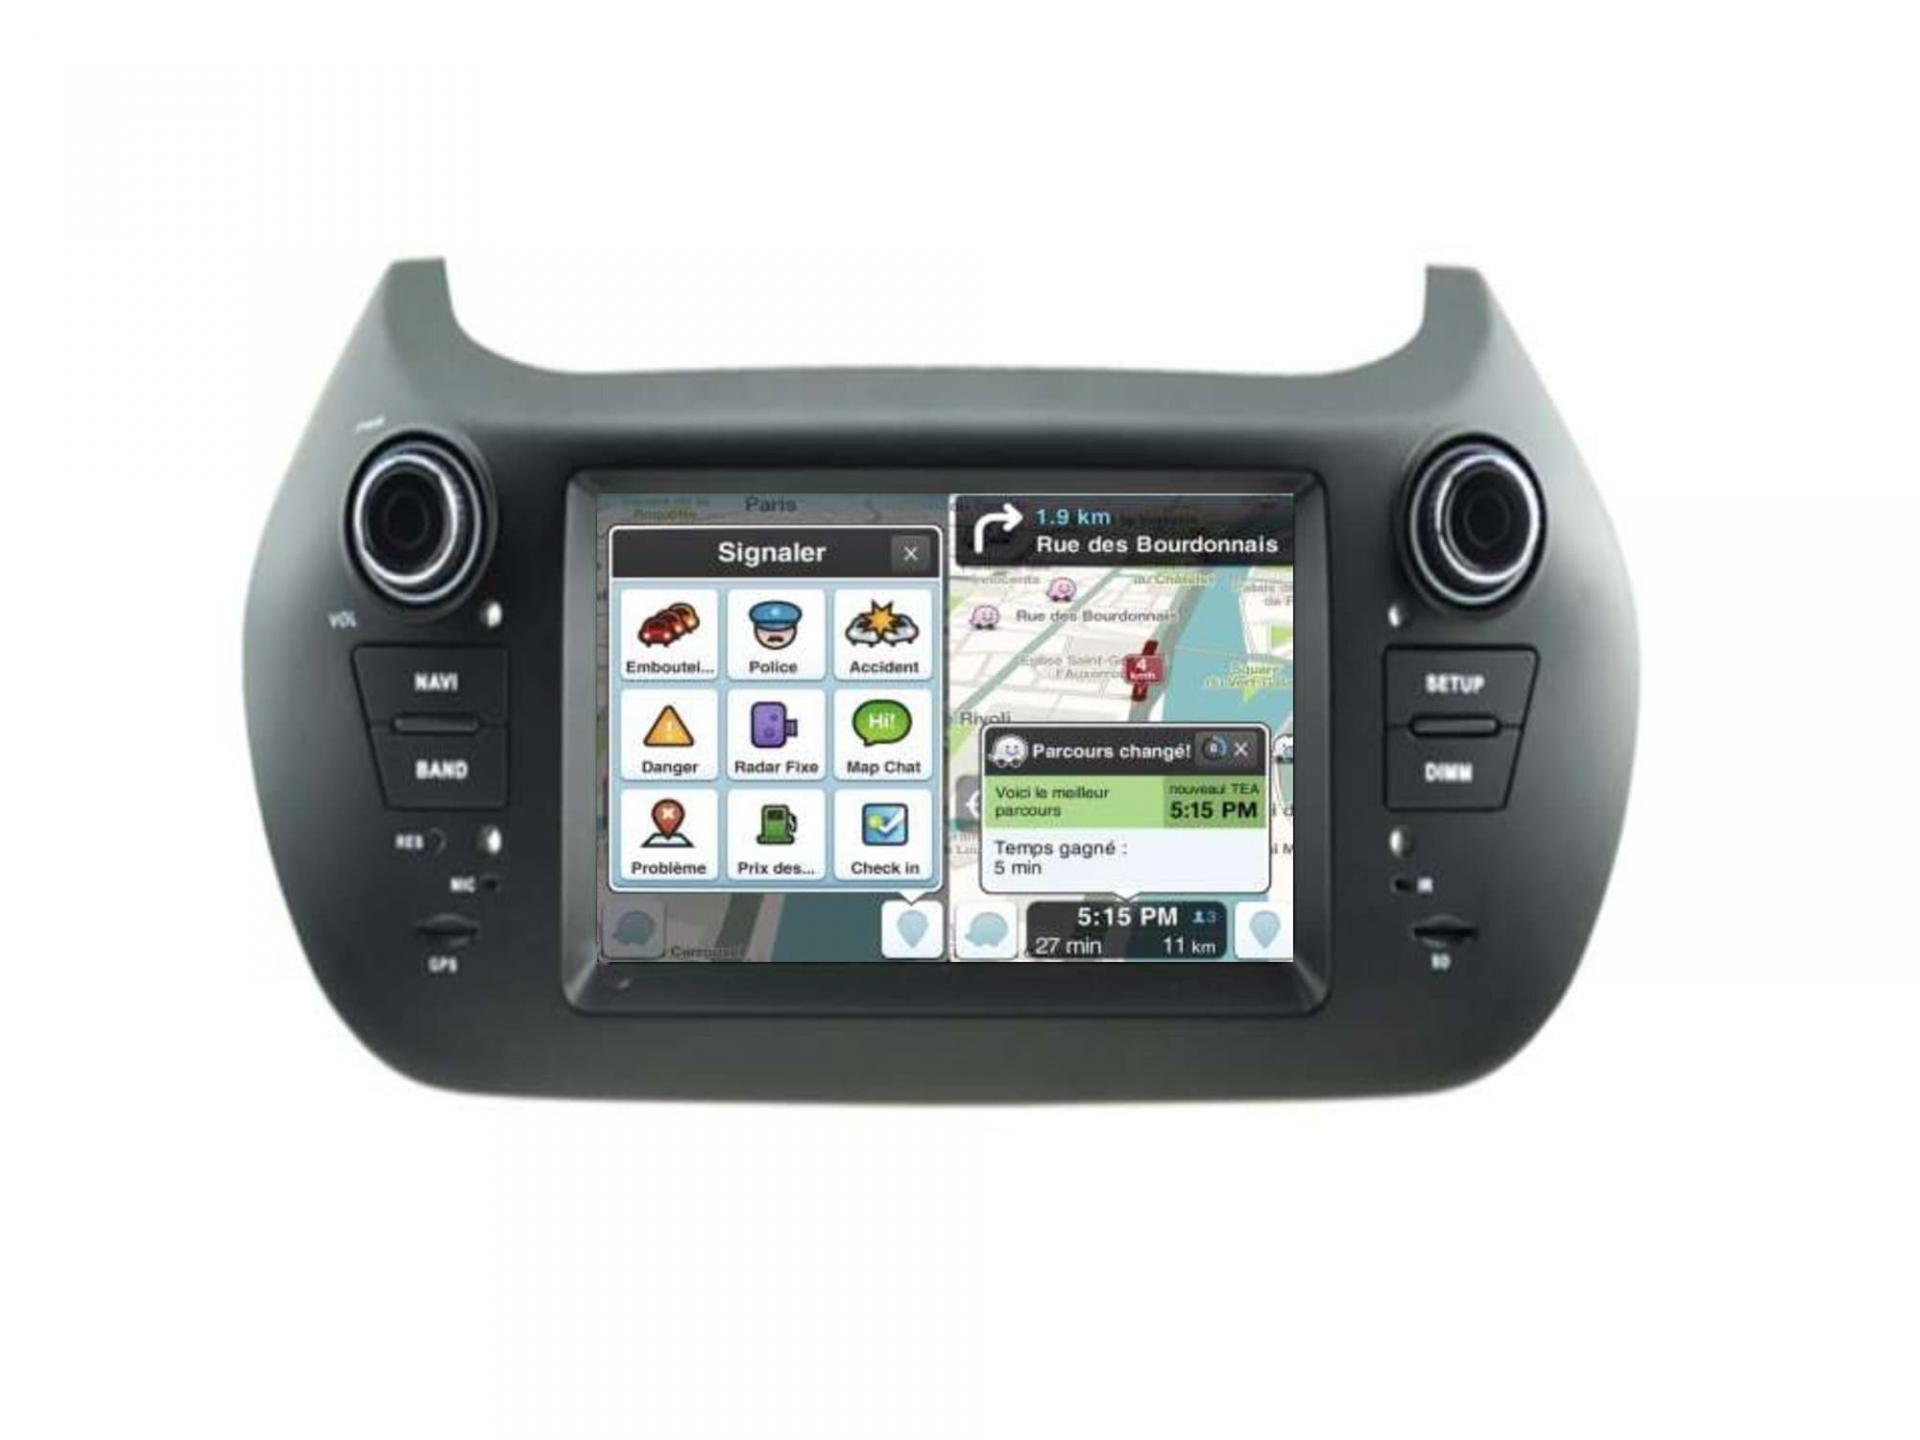 Citroen nemo peugeot bipper fiat fiorino fiat qubo bmw gps carplay android auto gps bluetooth 1